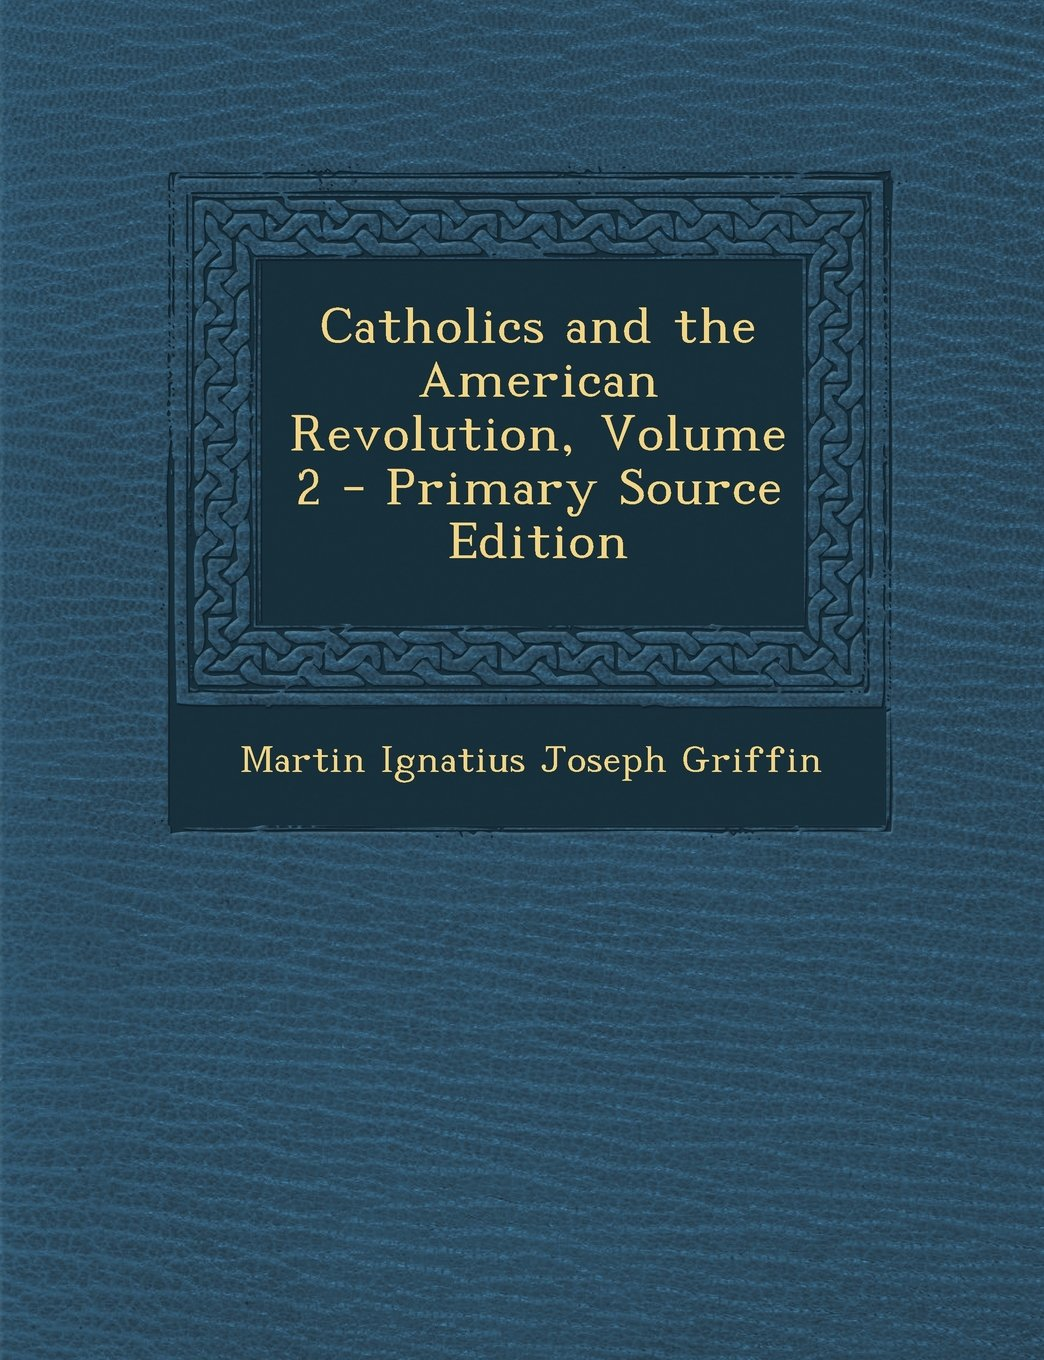 Catholics and the American Revolution, Volume 2 - Primary Source Edition ebook